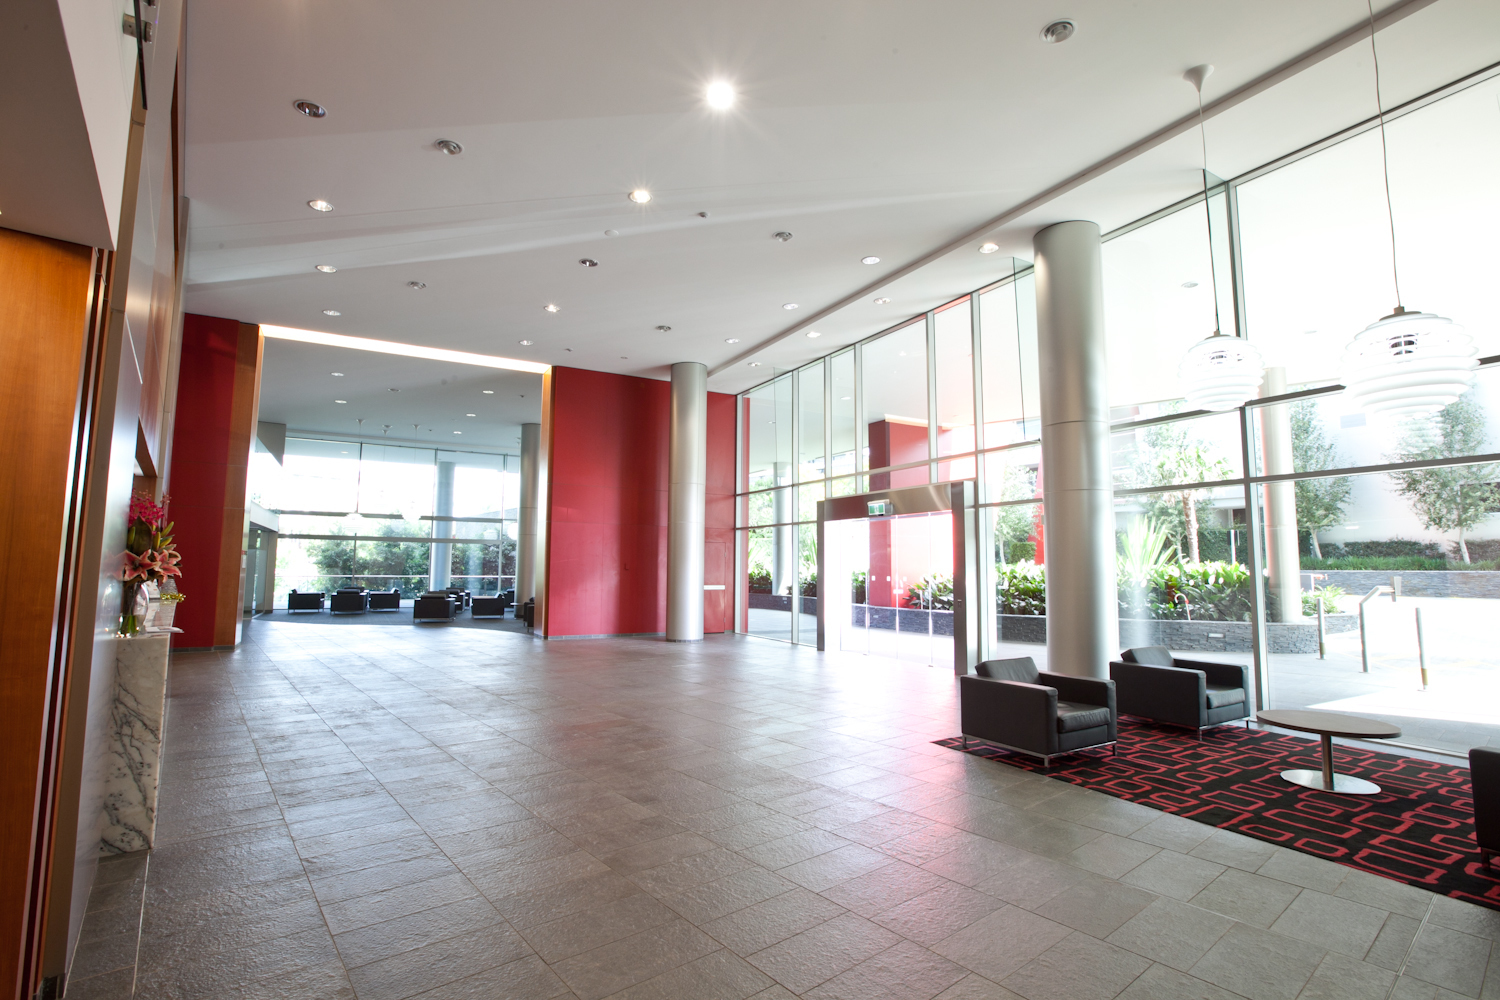 OFFICES LOCATED IN BAULKHAM HILLS FOR 1-PERSON